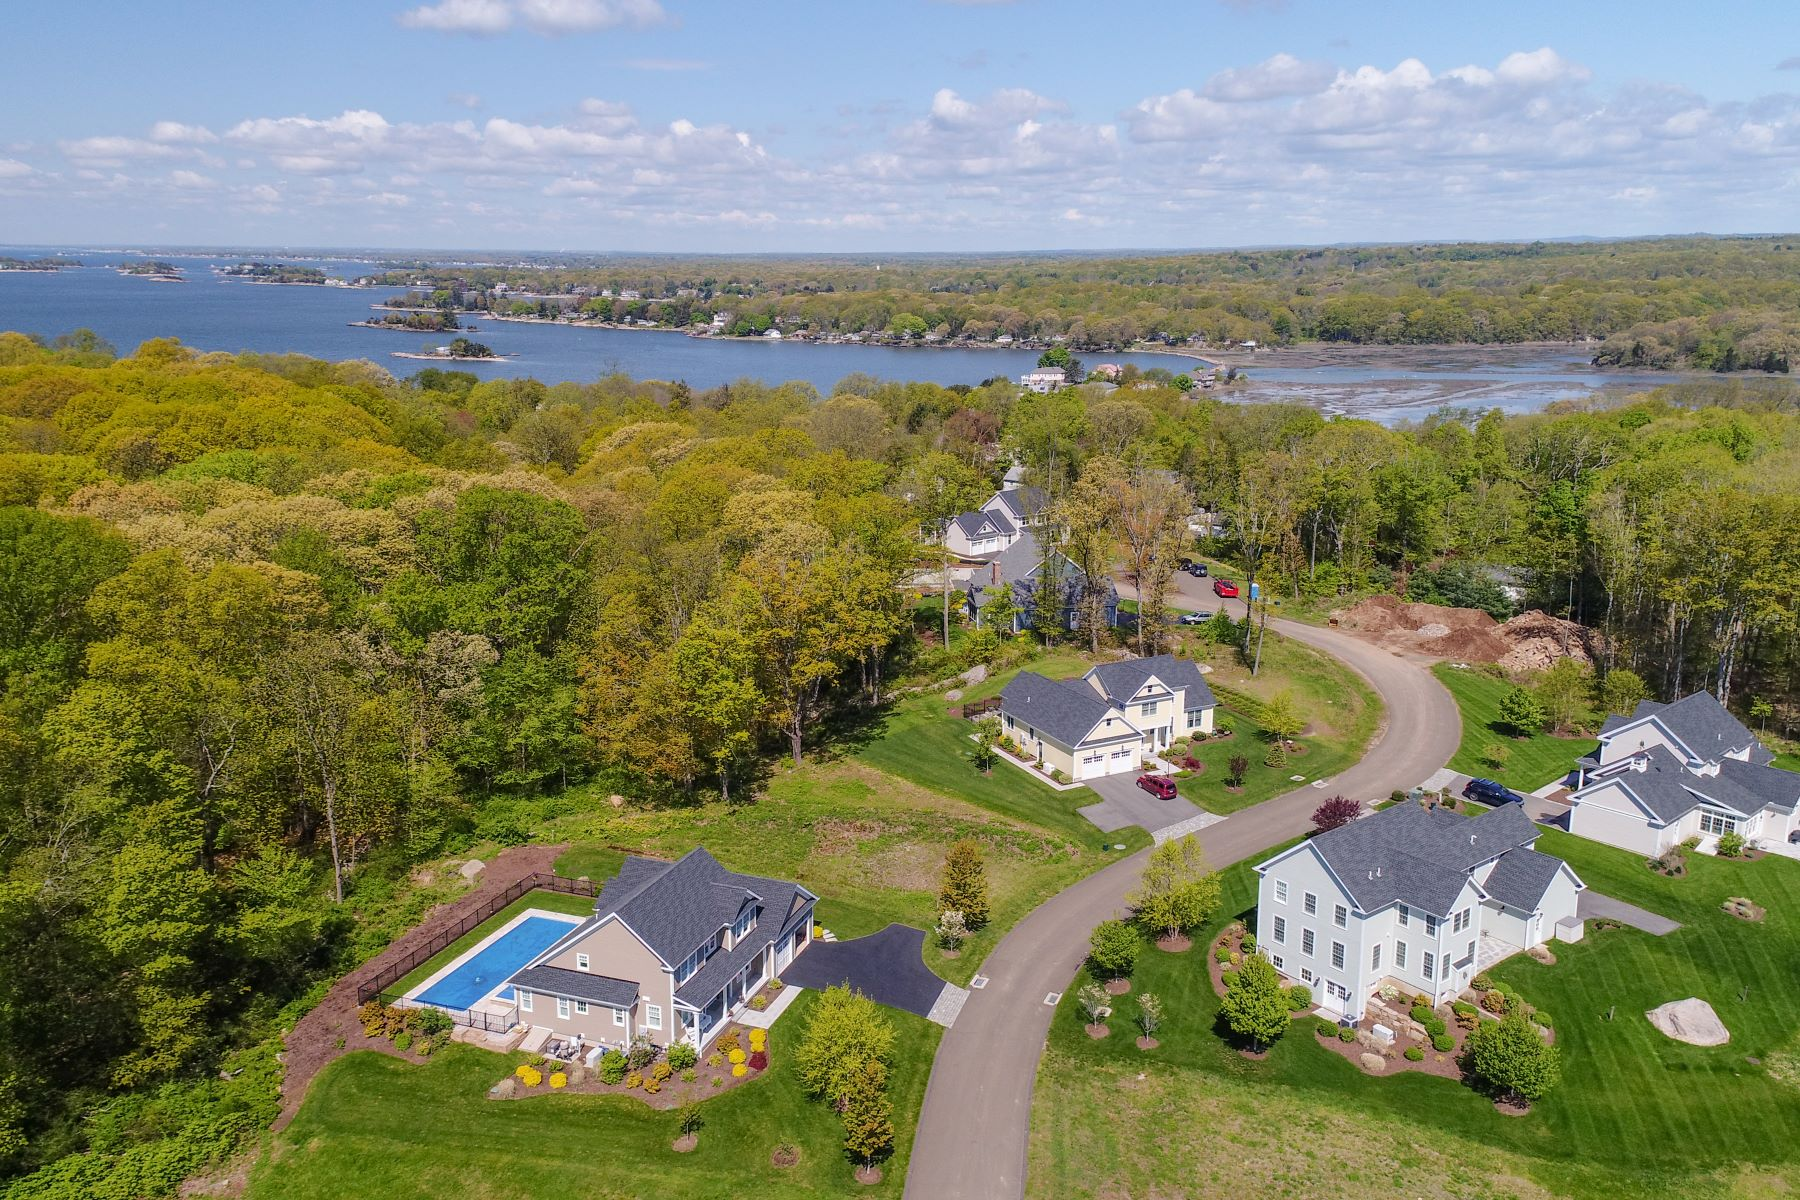 Single Family Homes for Active at Benton's Knoll in Sachem's Head 7 Benton's Knoll Guilford, Connecticut 06437 United States